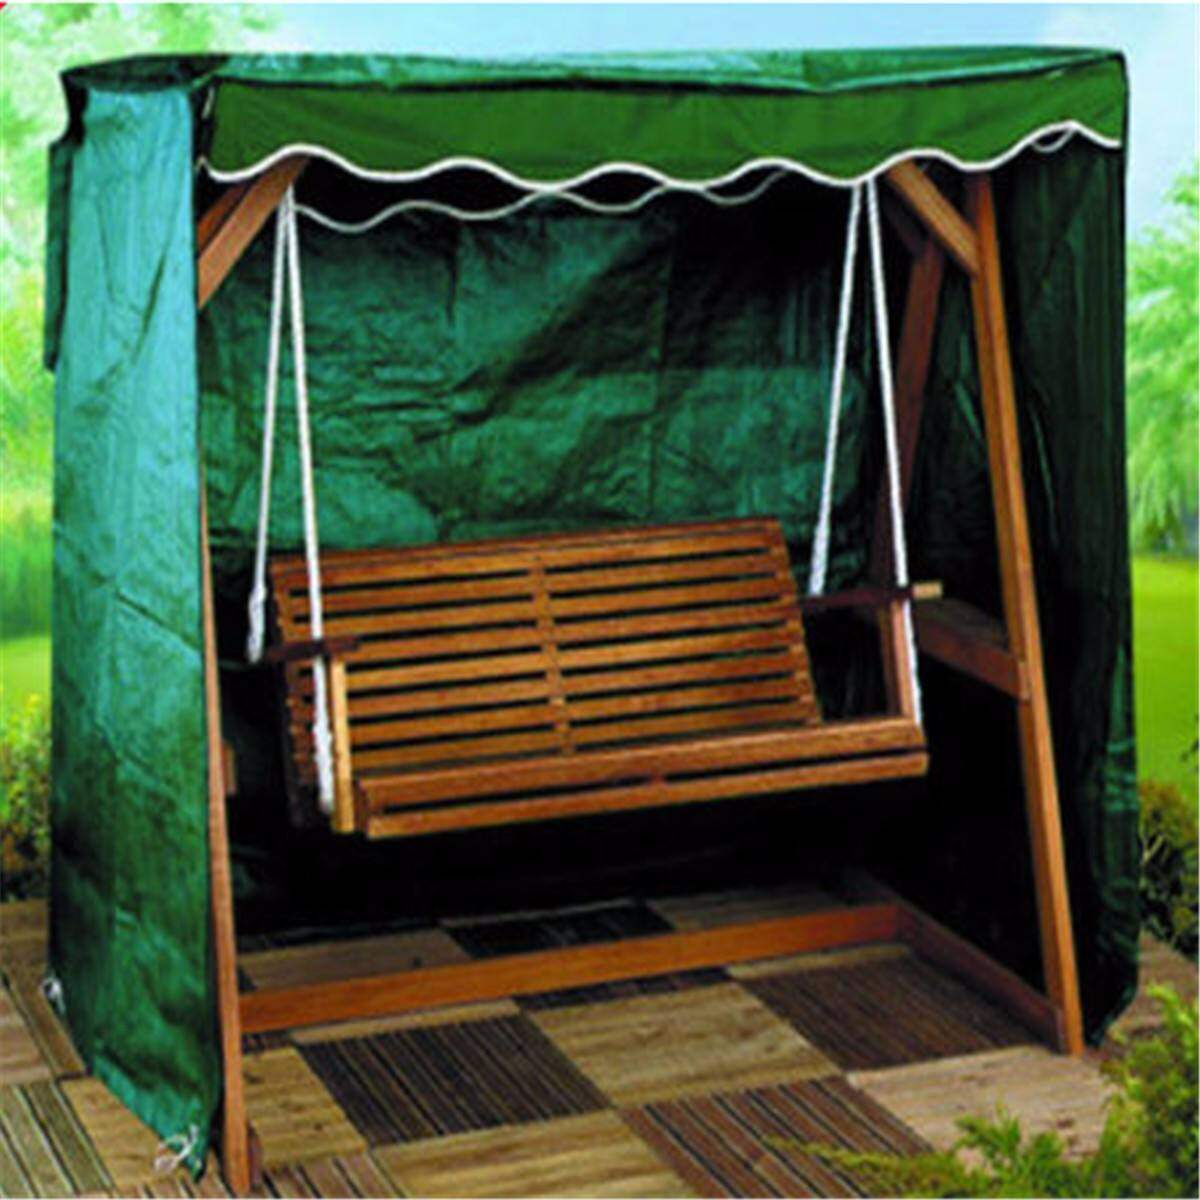 Swing Coverings  200x110x175cm On Both Sides With A Zipper Waterproof Outdoor Garden Furniture